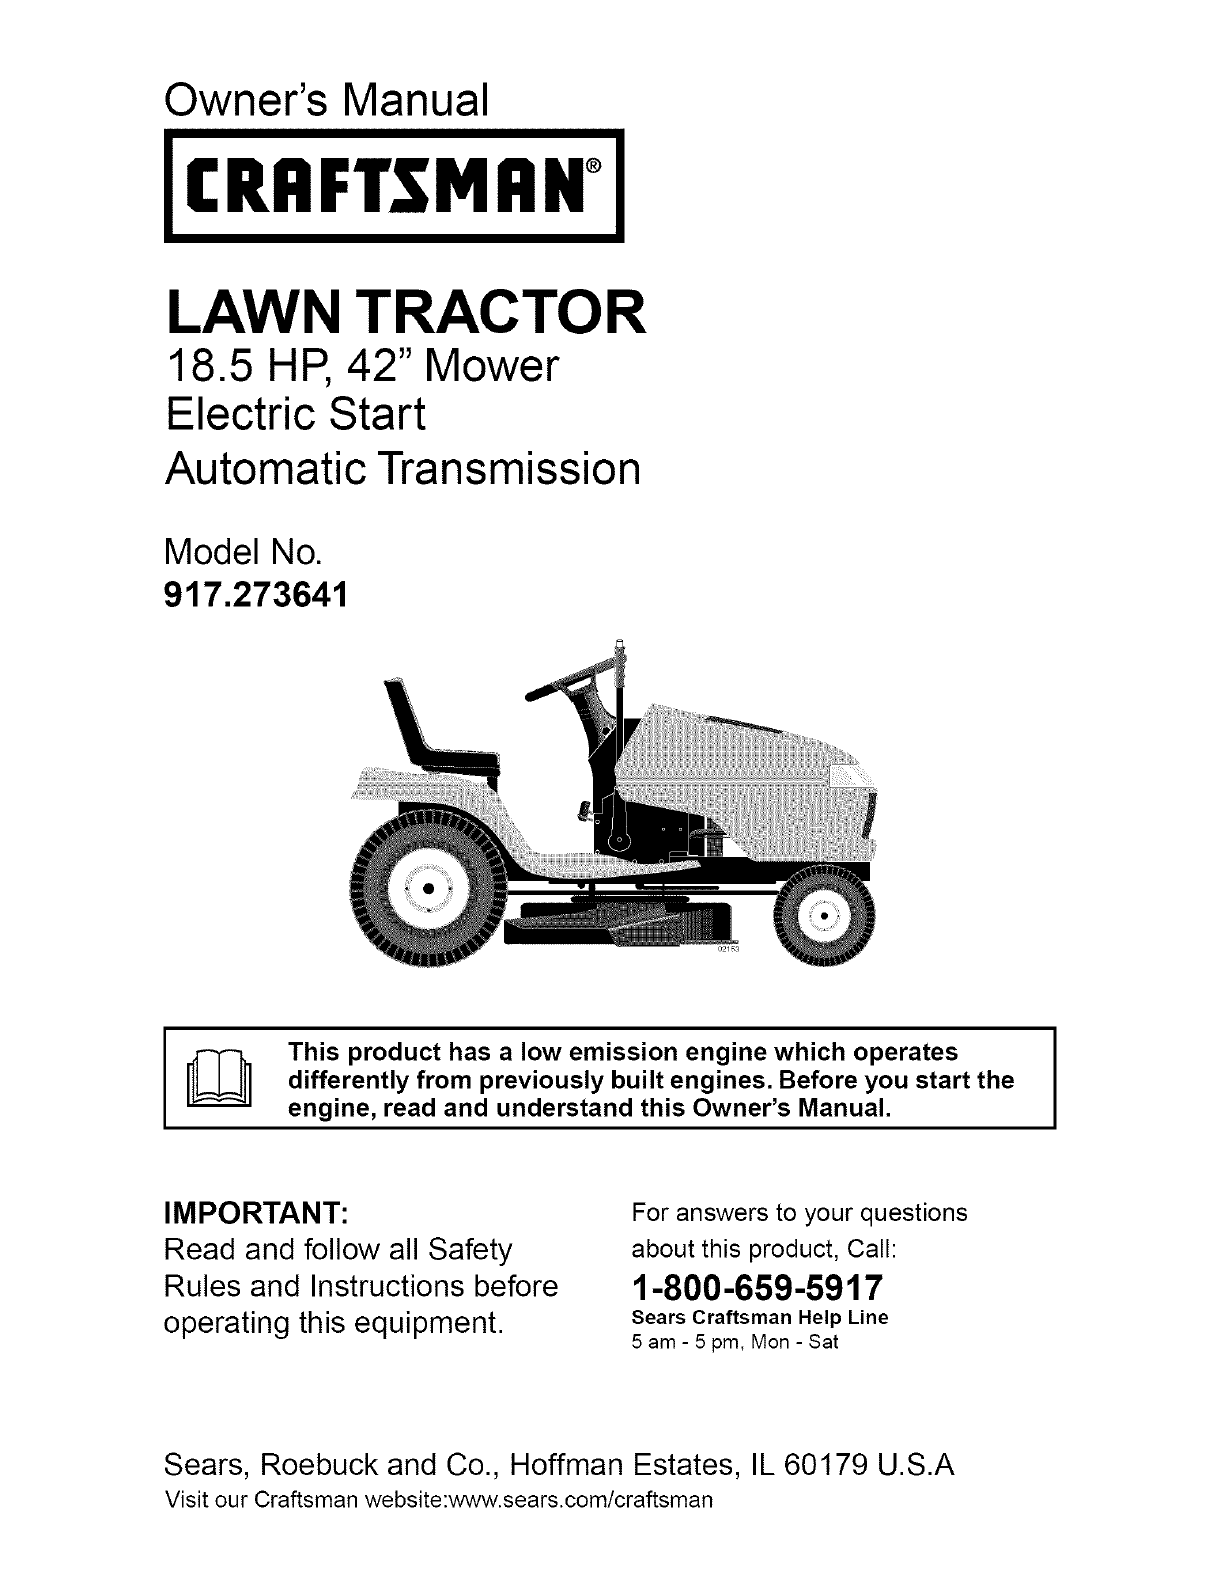 Wiring Diagram Craftsman 830 Riding Mower  Murray Lawn Mower